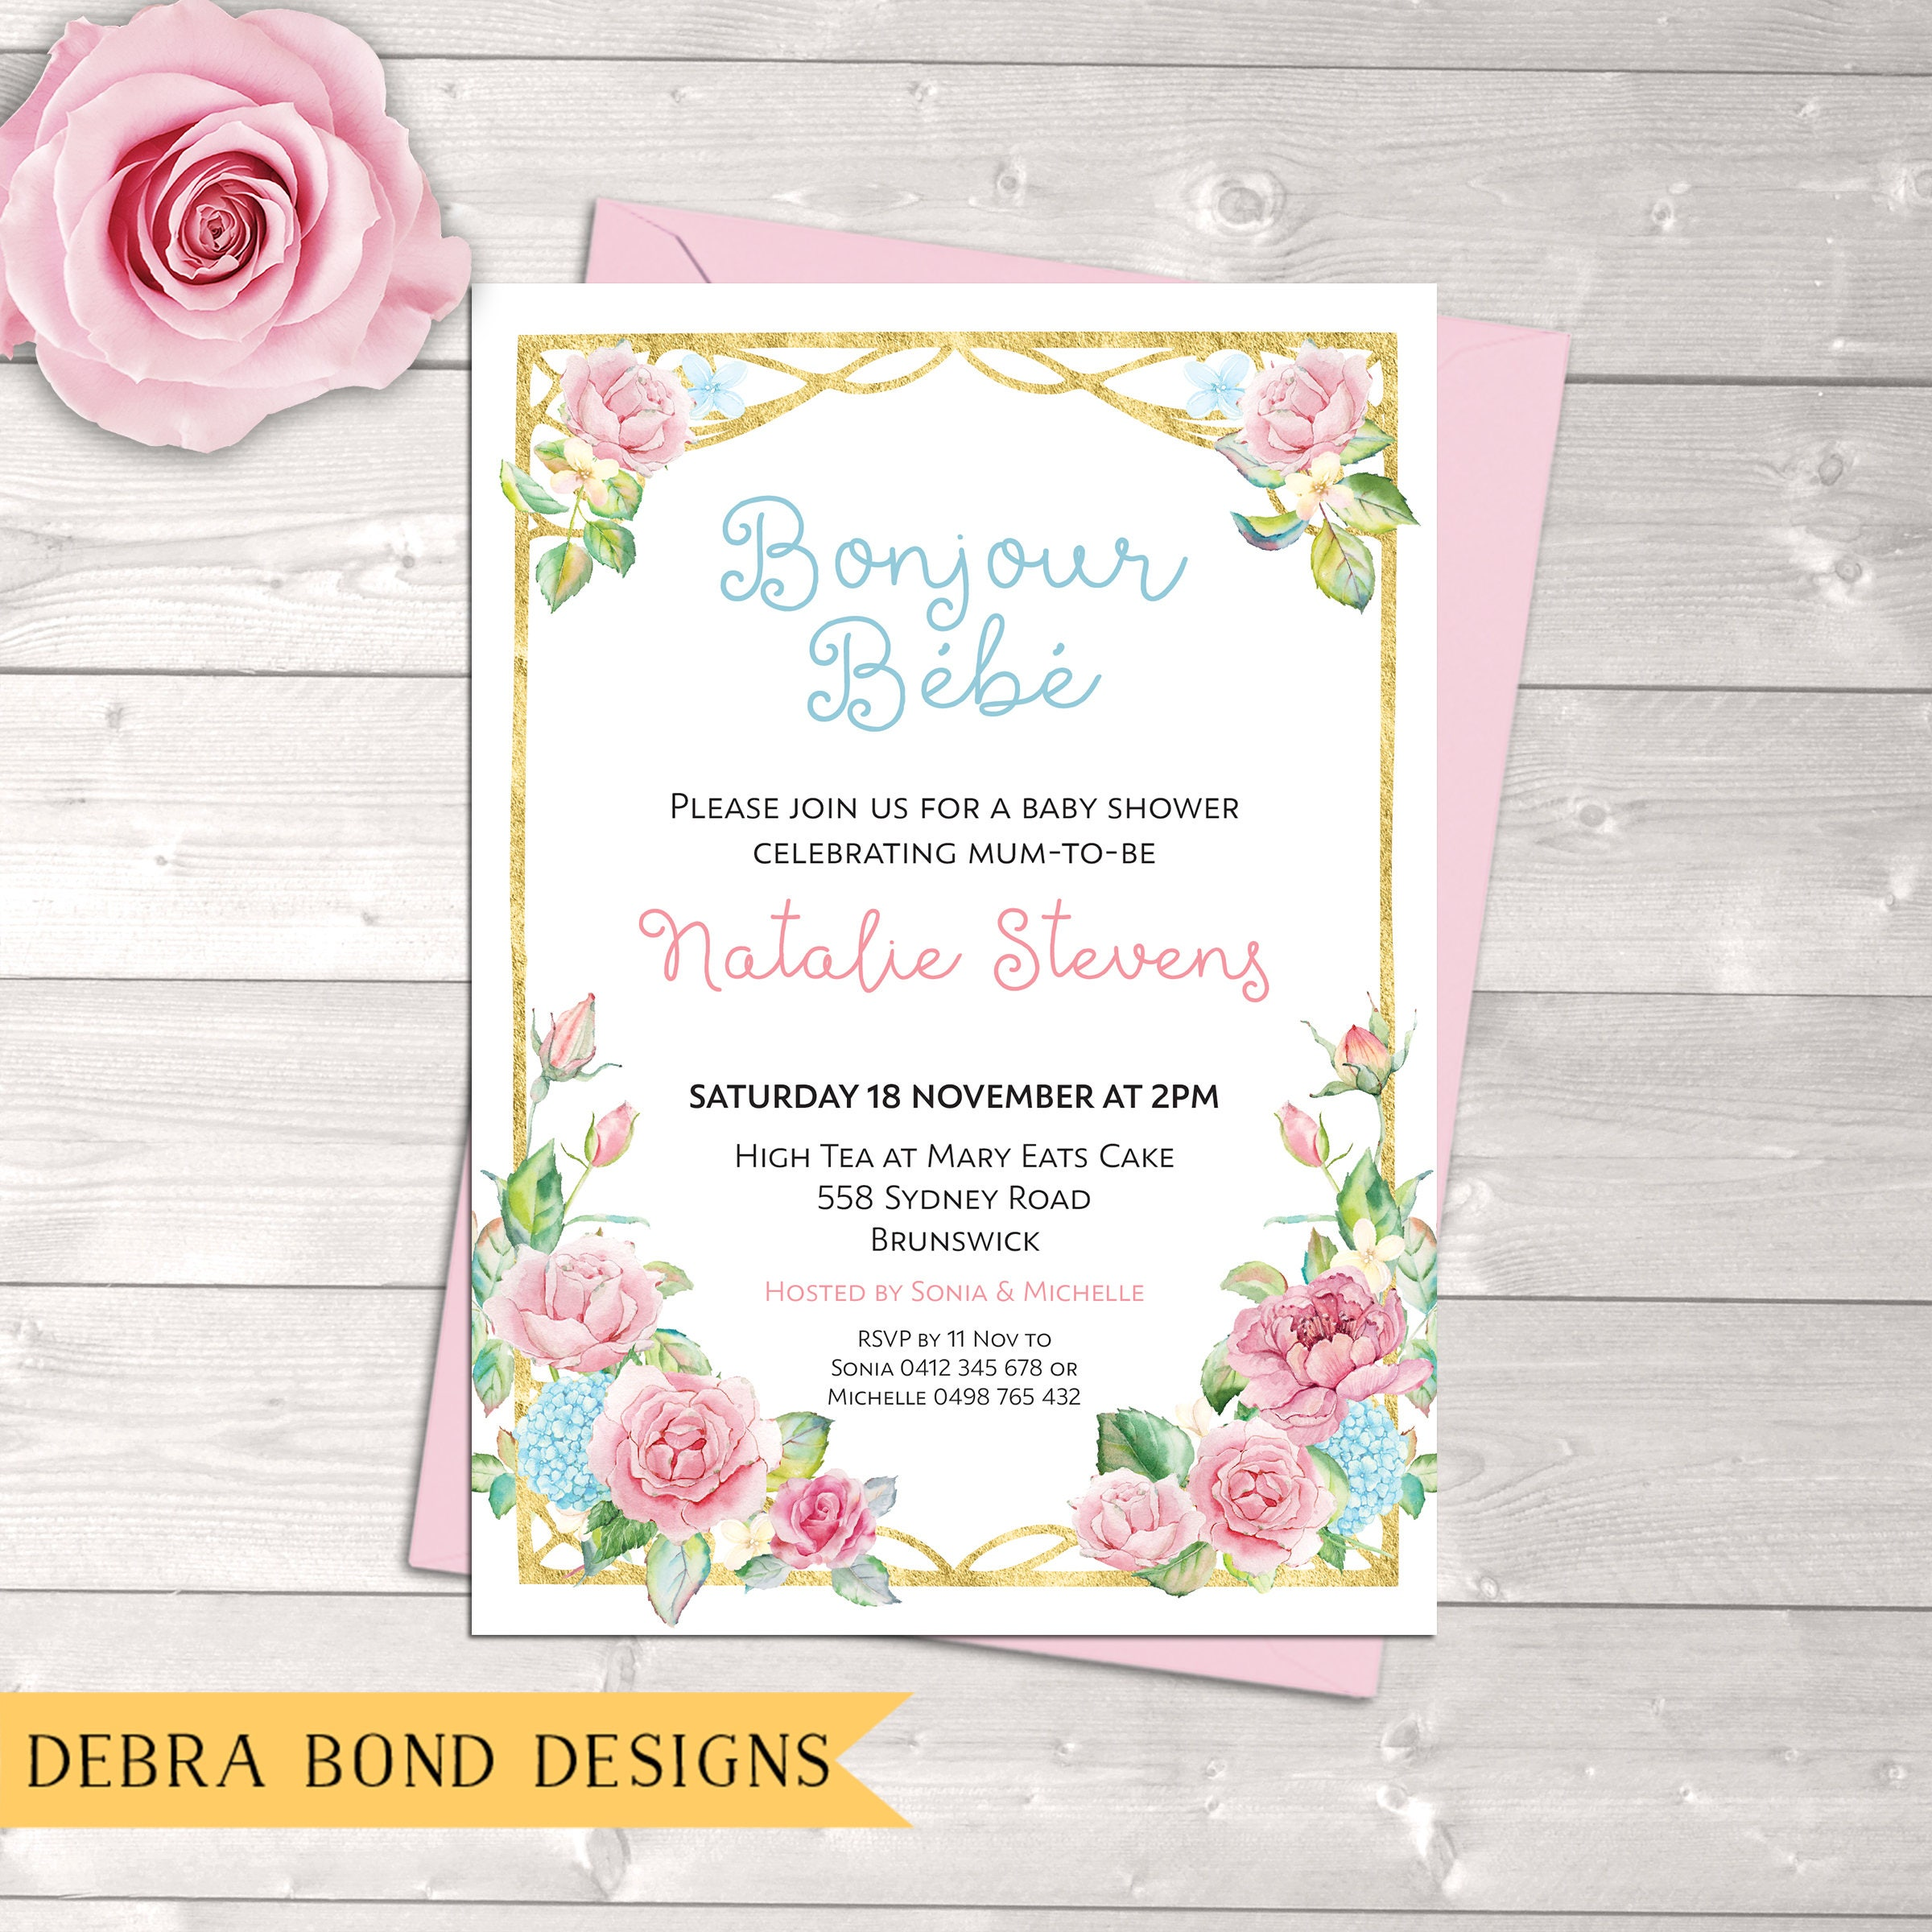 Baby Shower Invitation French Bonjour Bebe French Baby Shower